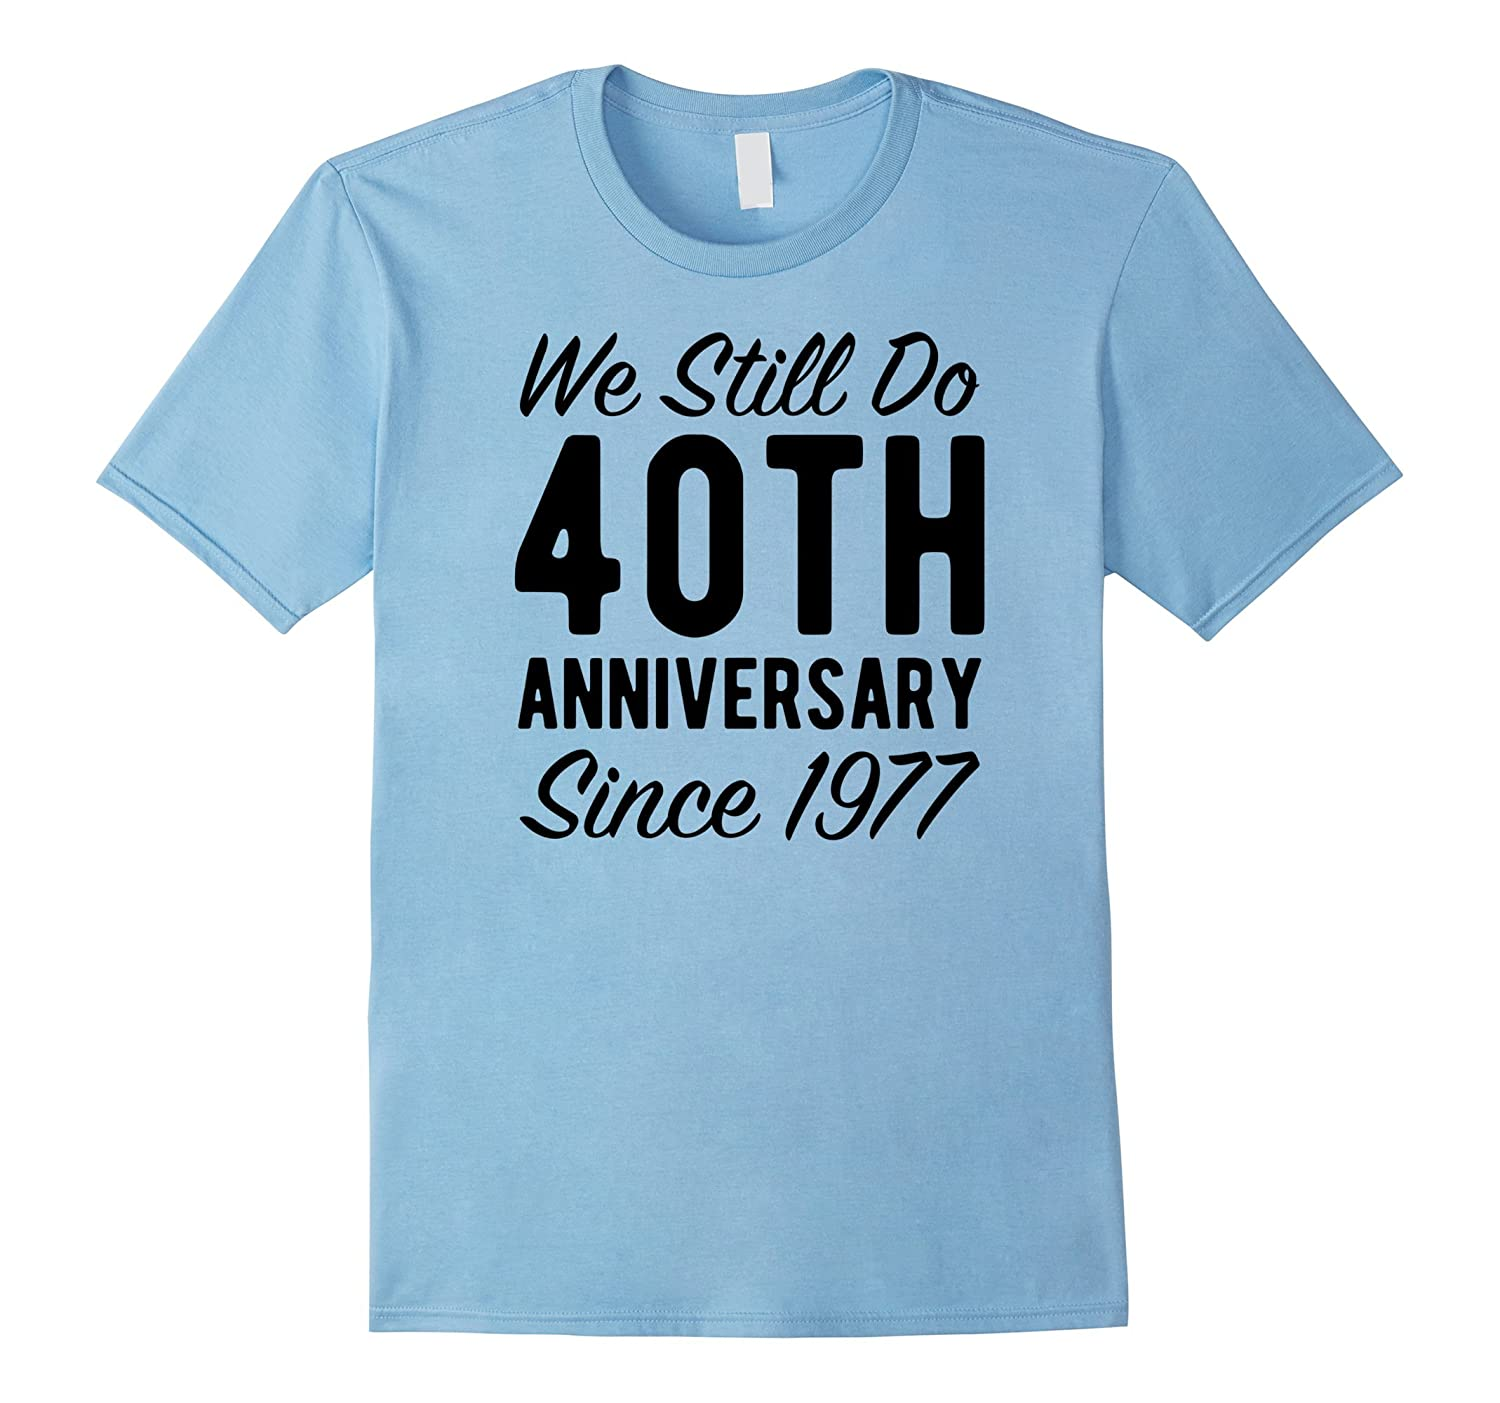 40th Anniversary Gift T Shirt Since 1977 We Still Do Tee-T-Shirt